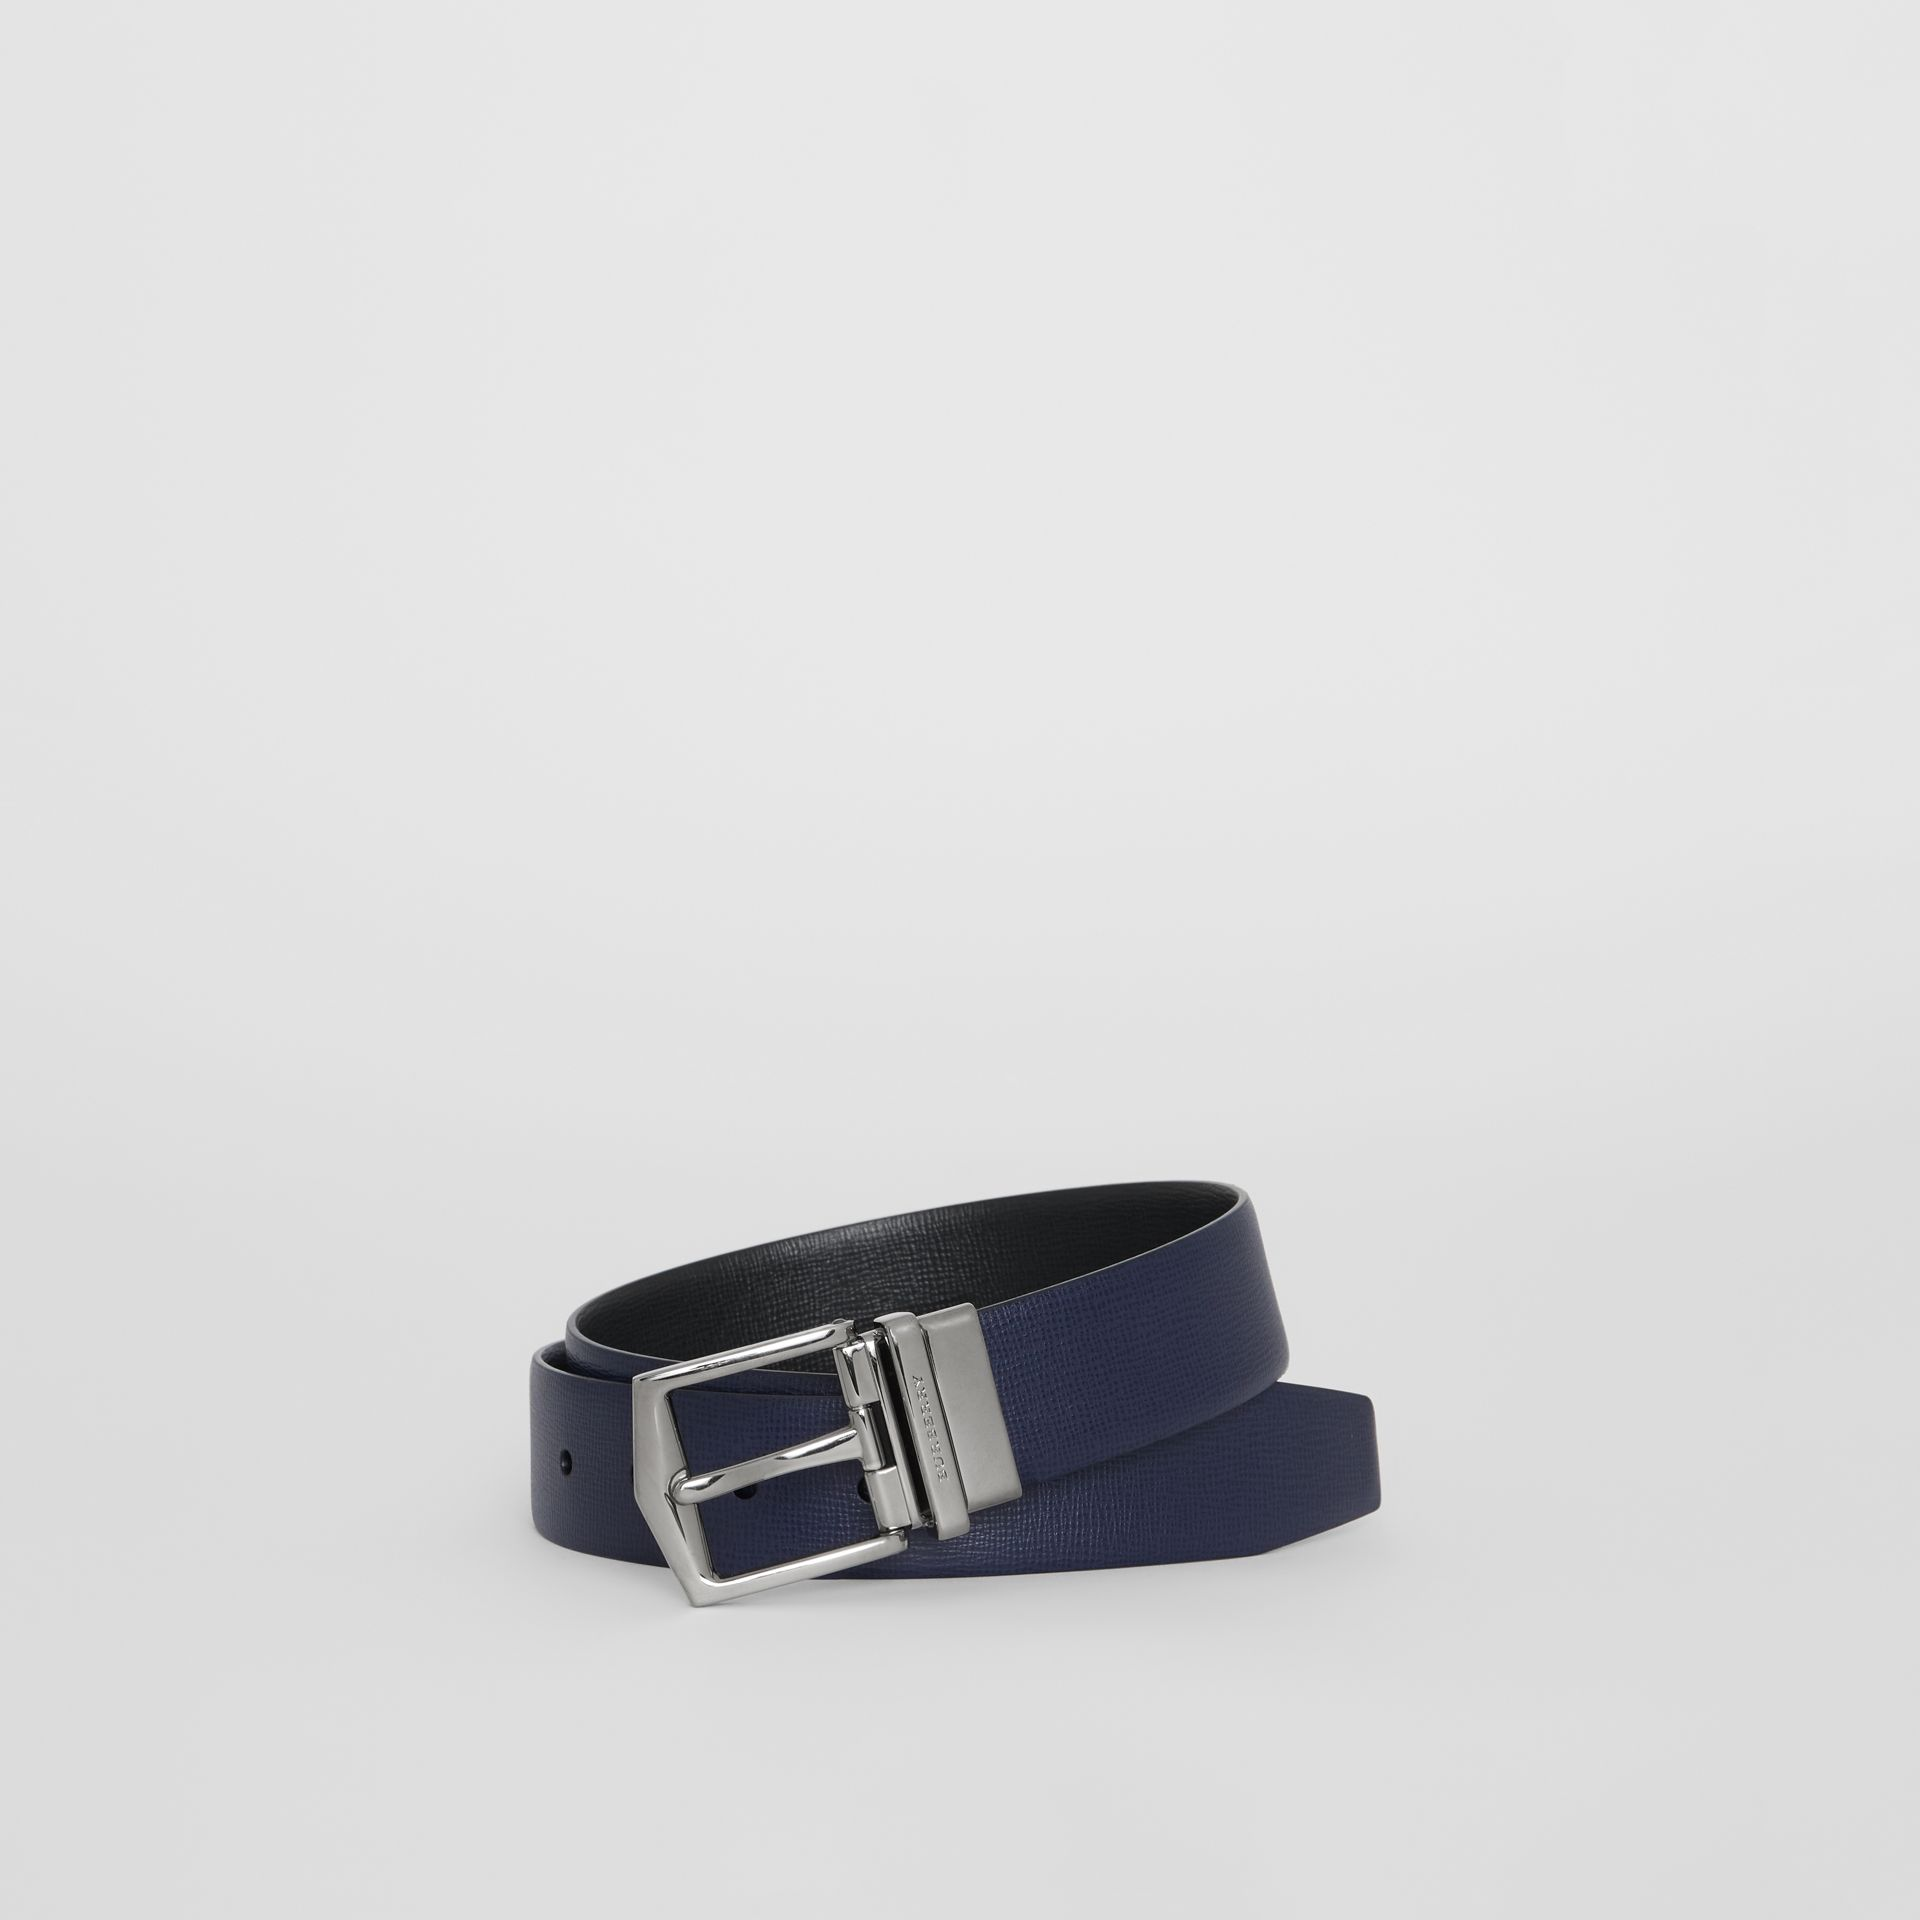 Cintura double face in pelle London (Navy Scuro/nero) - Uomo | Burberry - immagine della galleria 0